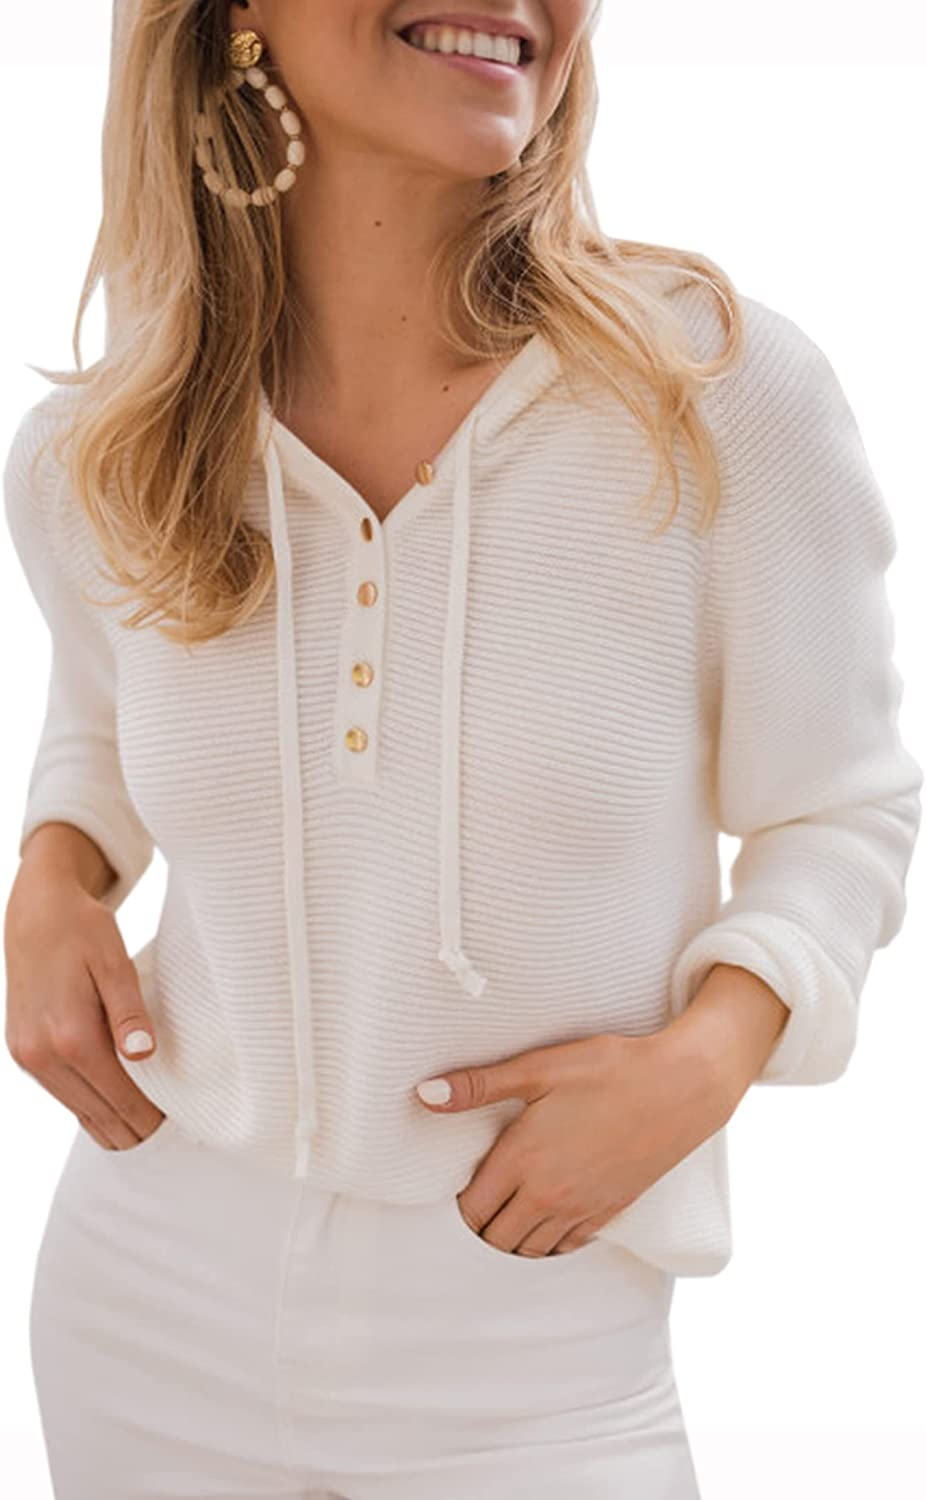 Angashion Women's Pullover Sweater Hoodies Casual Button Up V Neck Knitted Long Sleeve Hooded Sweaters Henley Tops